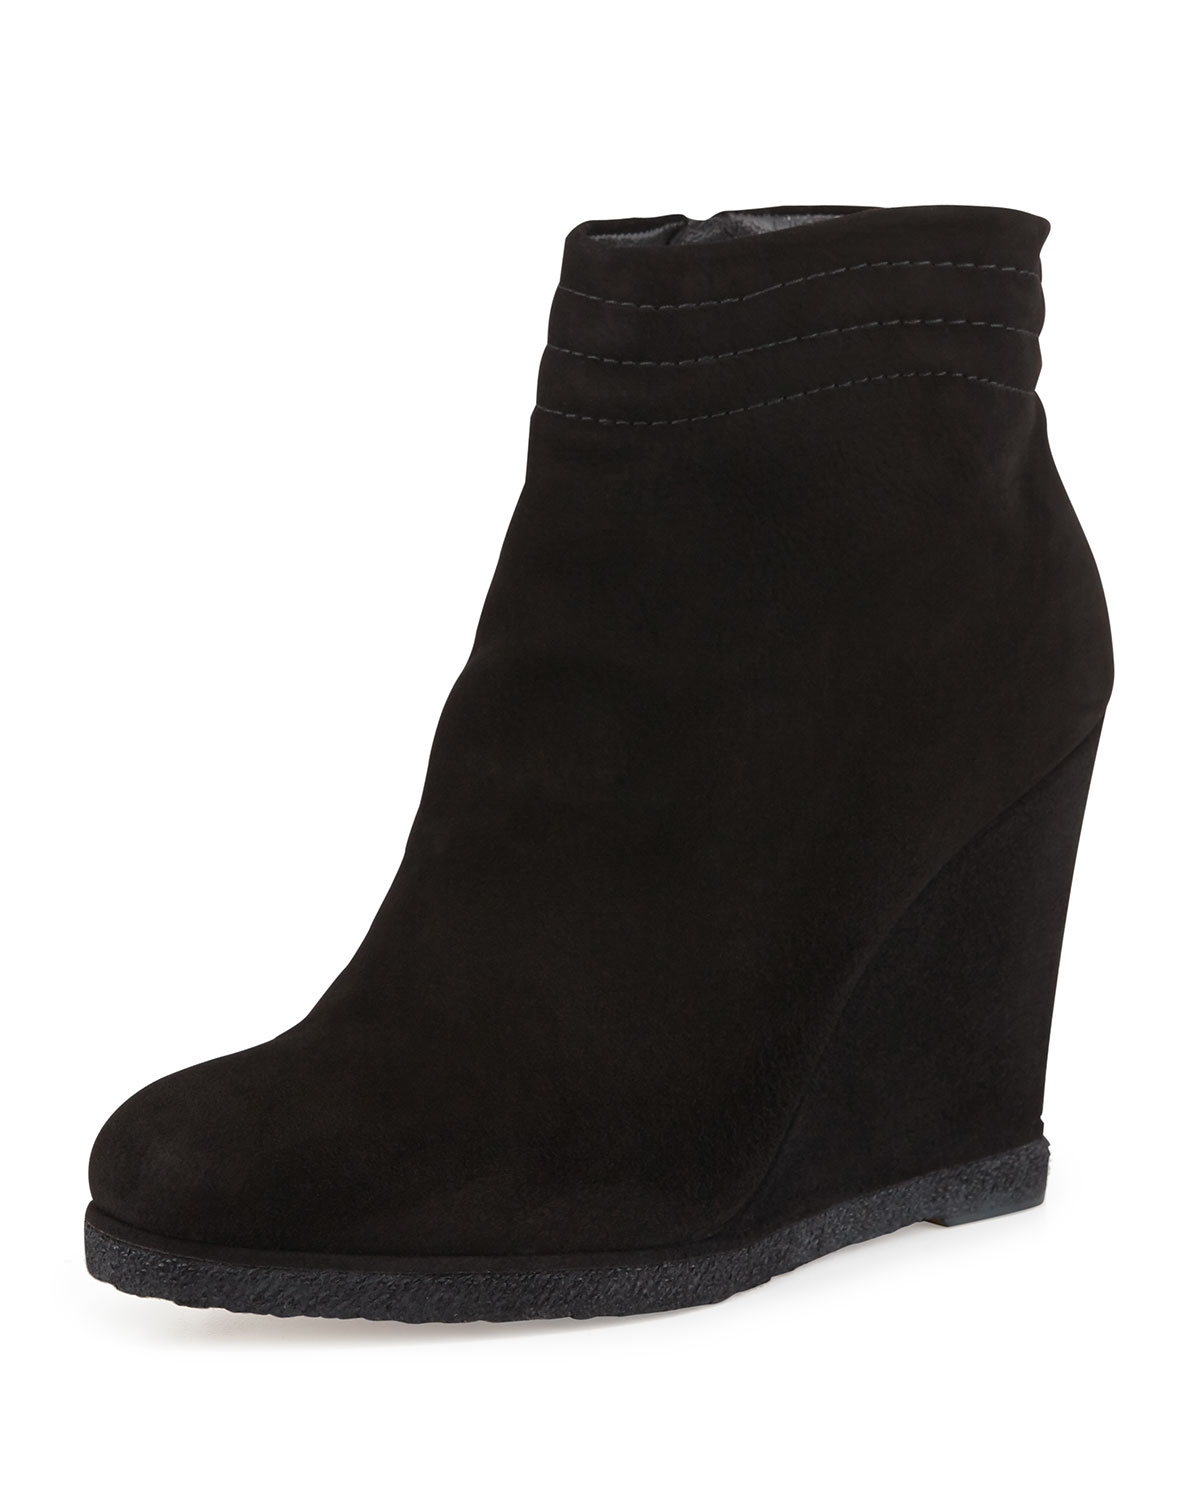 stuart weitzman meridian wedge ankle boot in black lyst